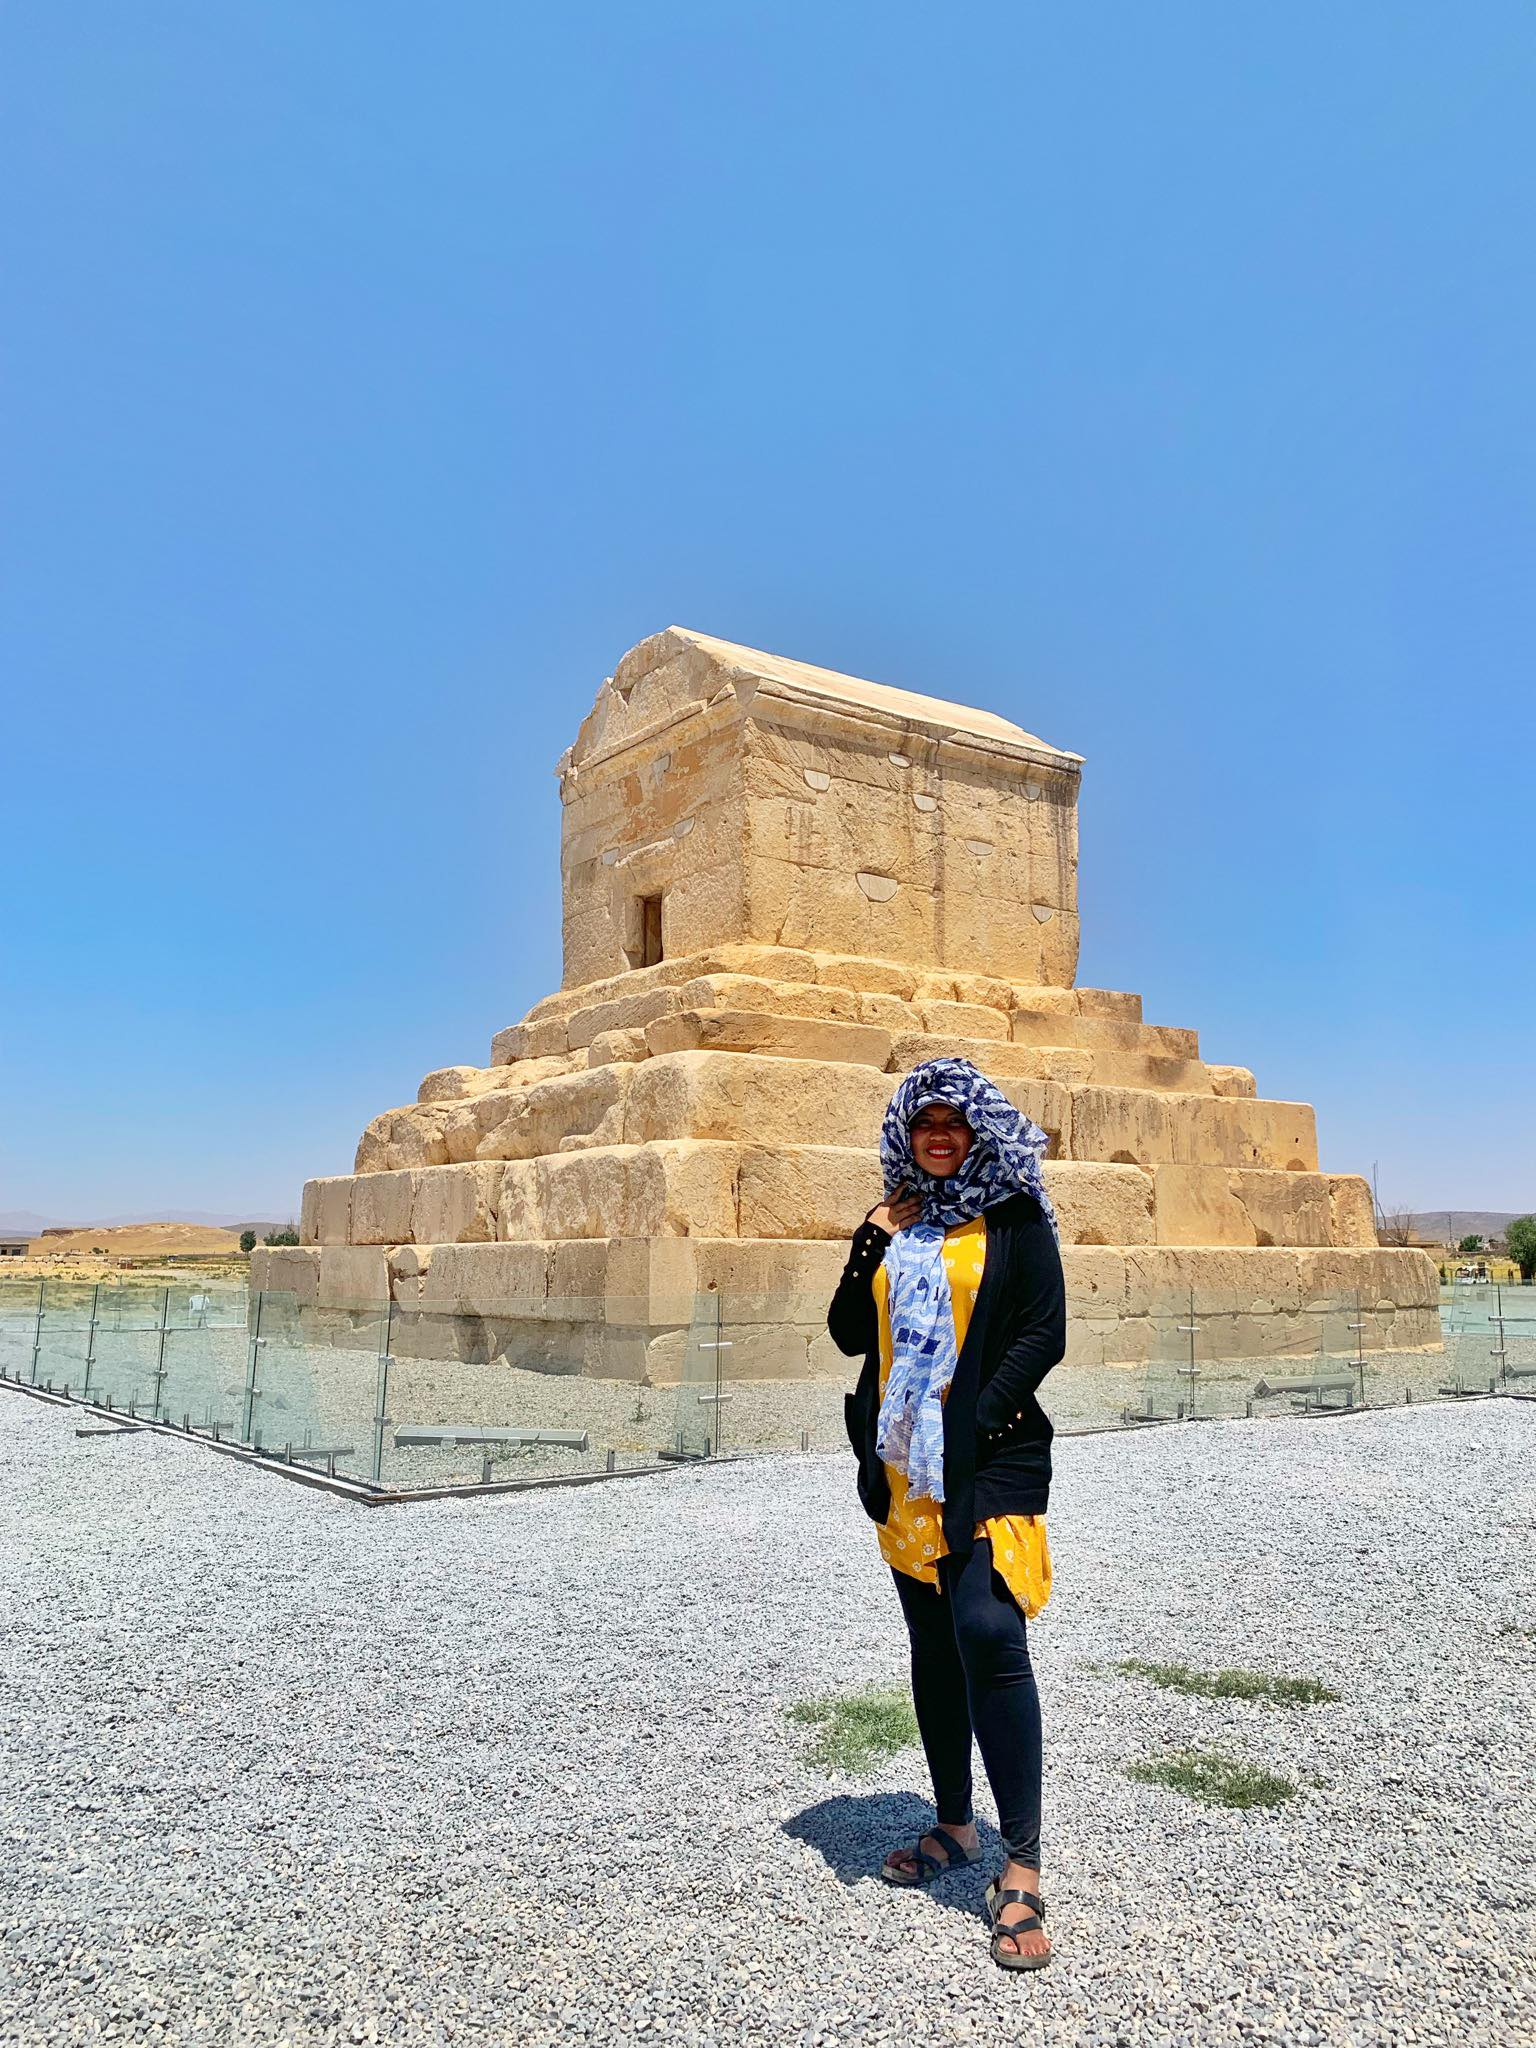 Kach Solo Travels in 2019 UNESCO heritages sites of Persepolis and Pasagardae19.jpg